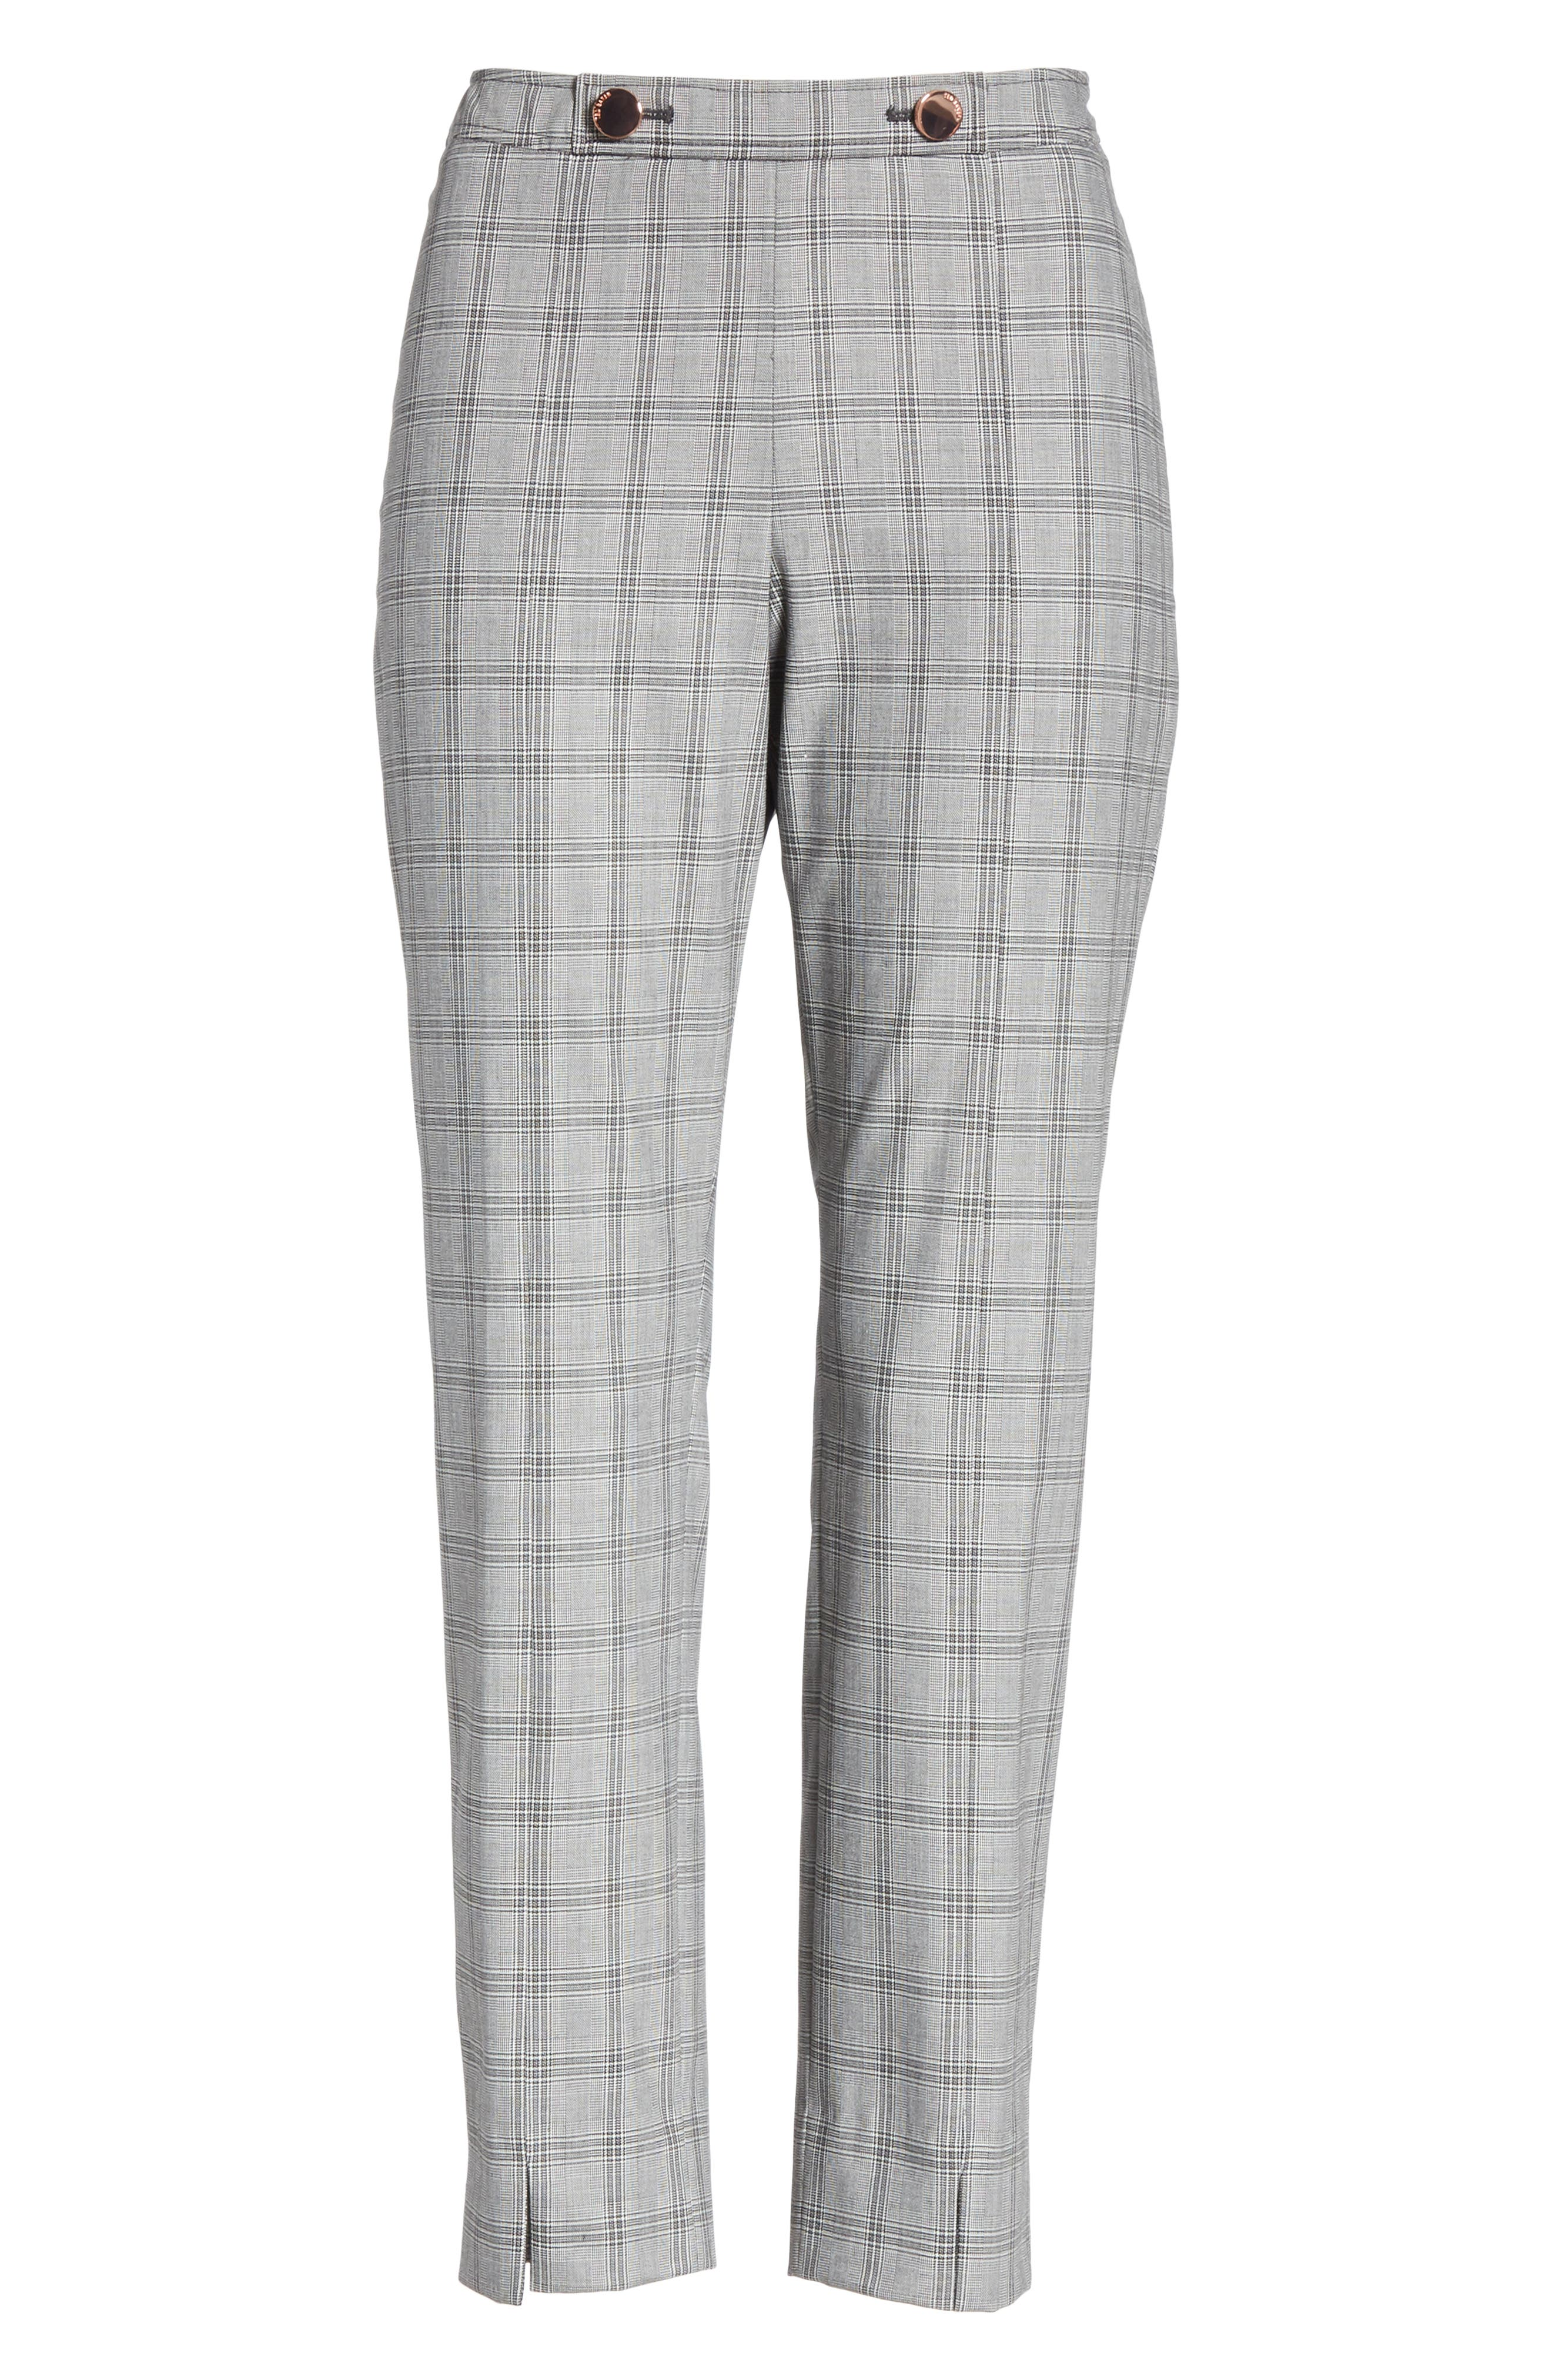 Ted Working Title Ristat Check Plaid Trousers,                             Alternate thumbnail 6, color,                             030